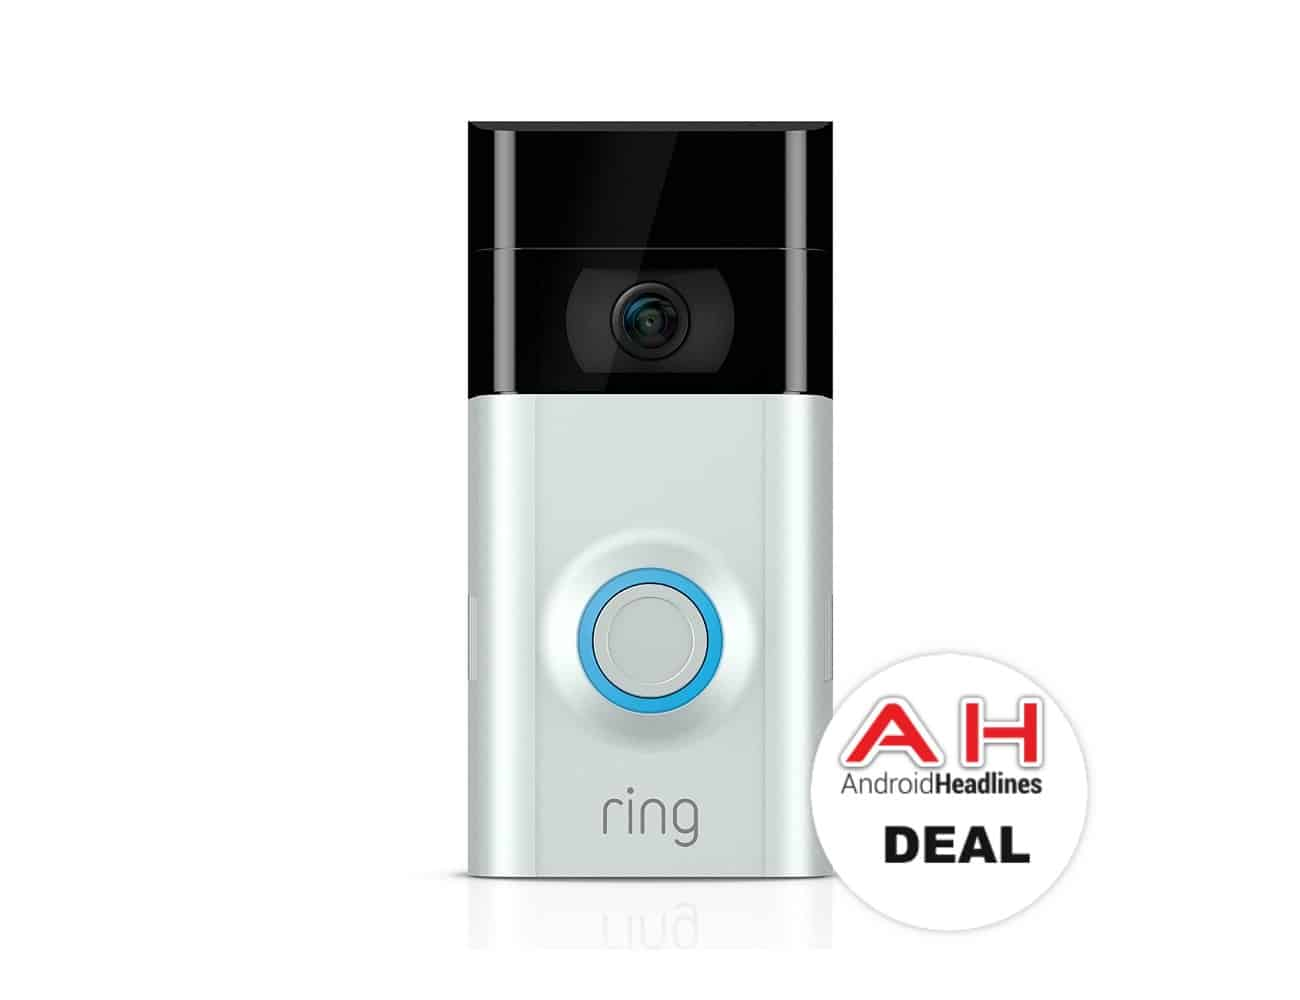 ring doorbell for sale ibanez support wiring diagrams deal video 2 169 1 31 18